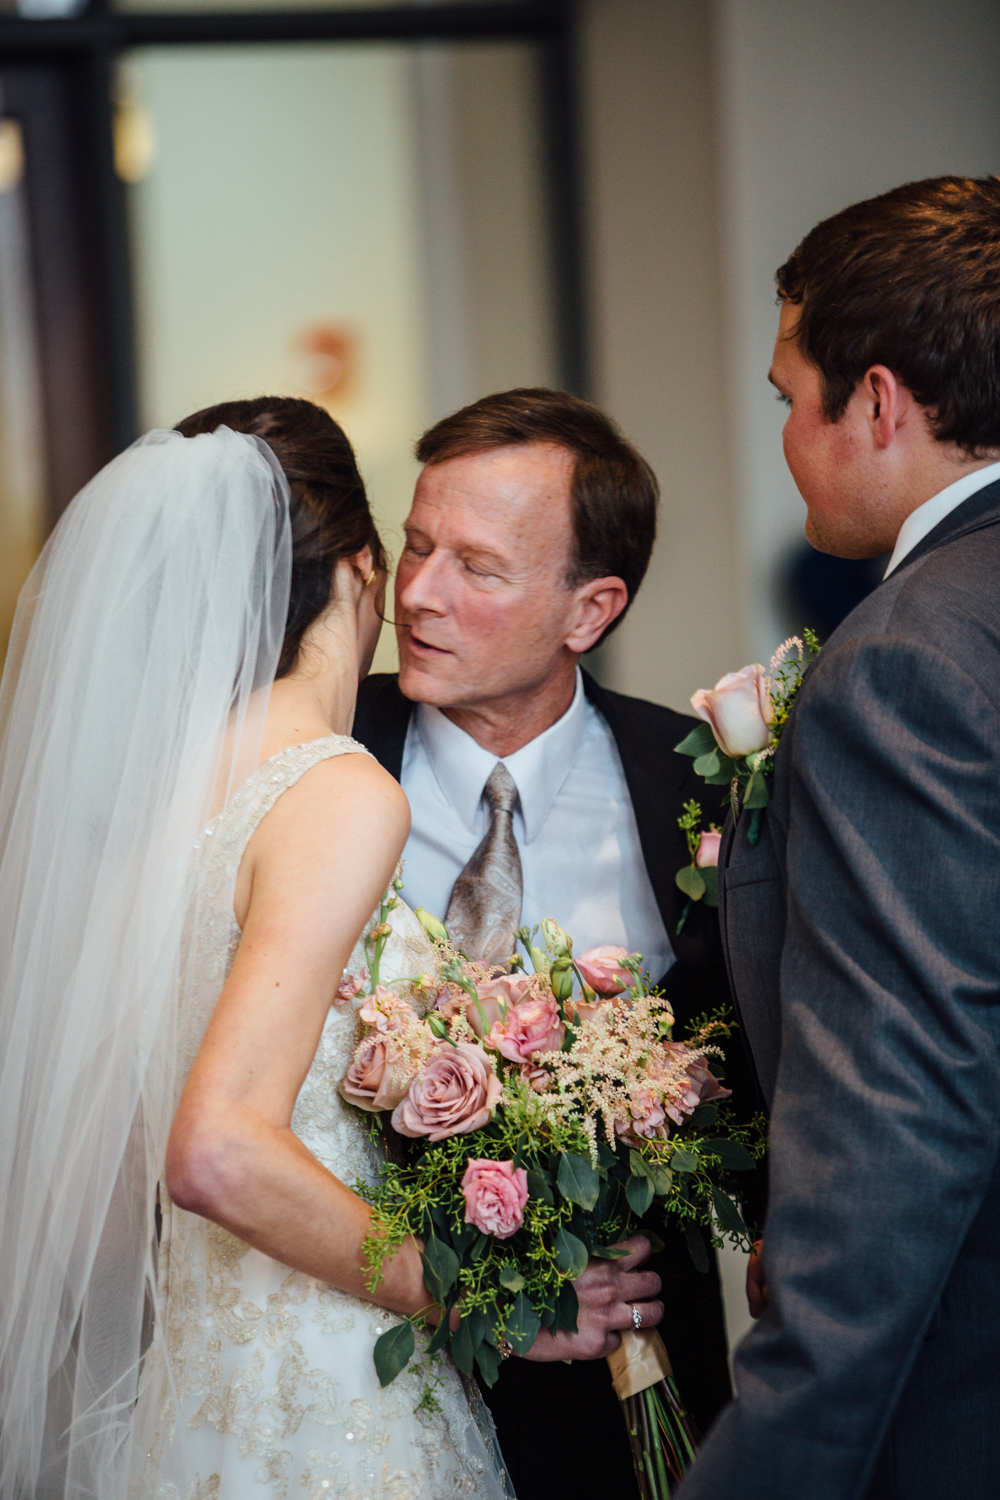 Fun, Intimate Spring Wedding by Corrie Mick Photography-39.jpg